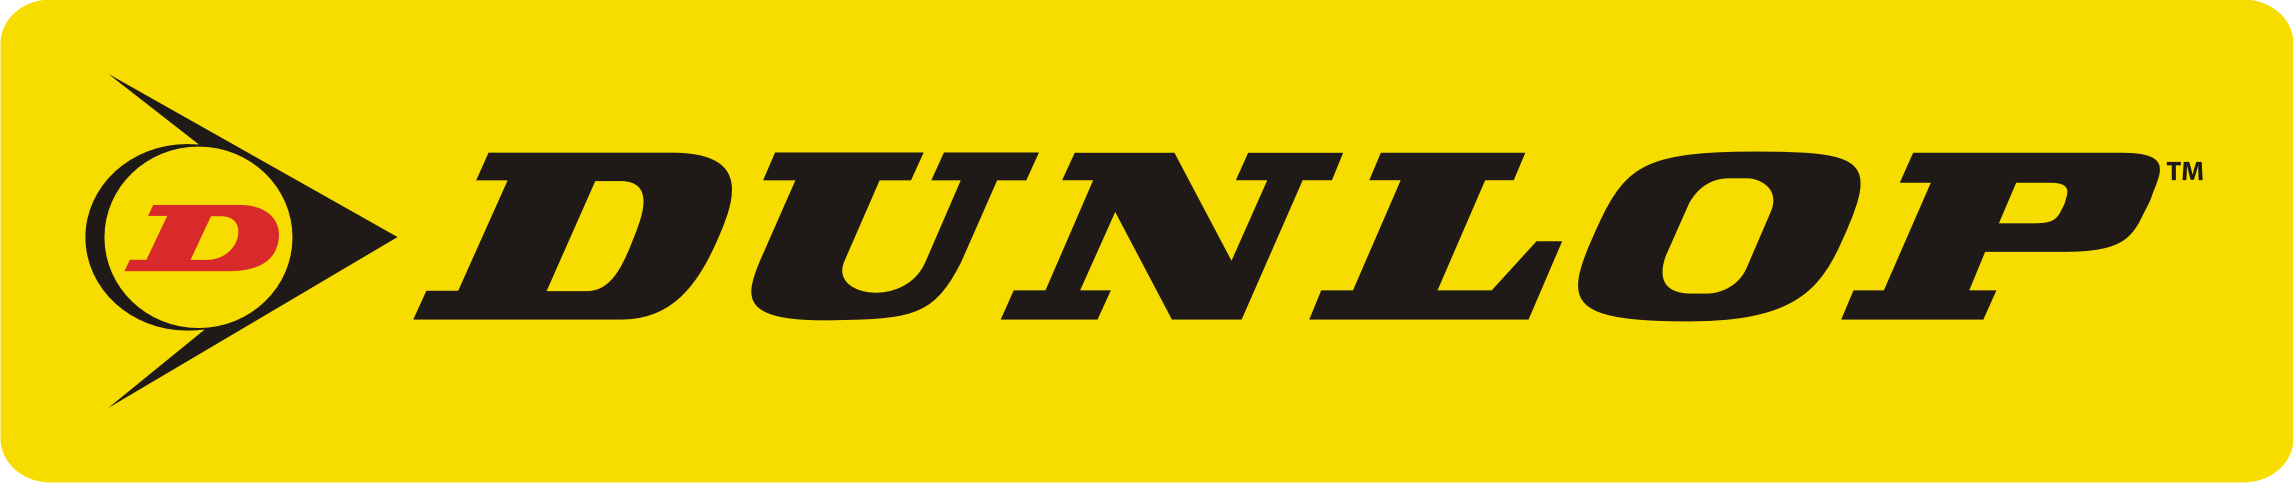 dunlop-tyres.png